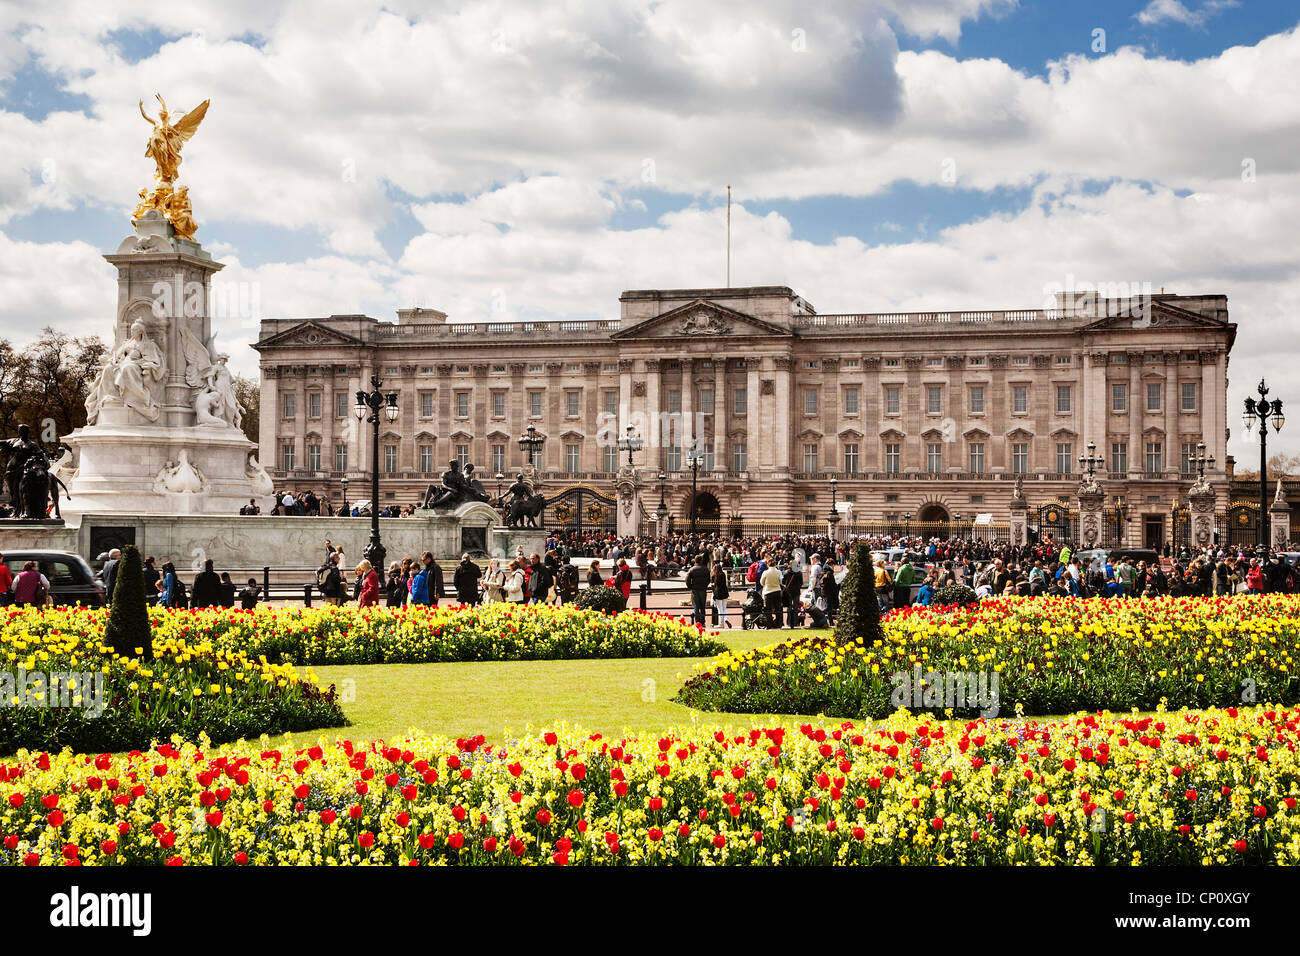 Buckingham Palace, London, England. - Stock Image